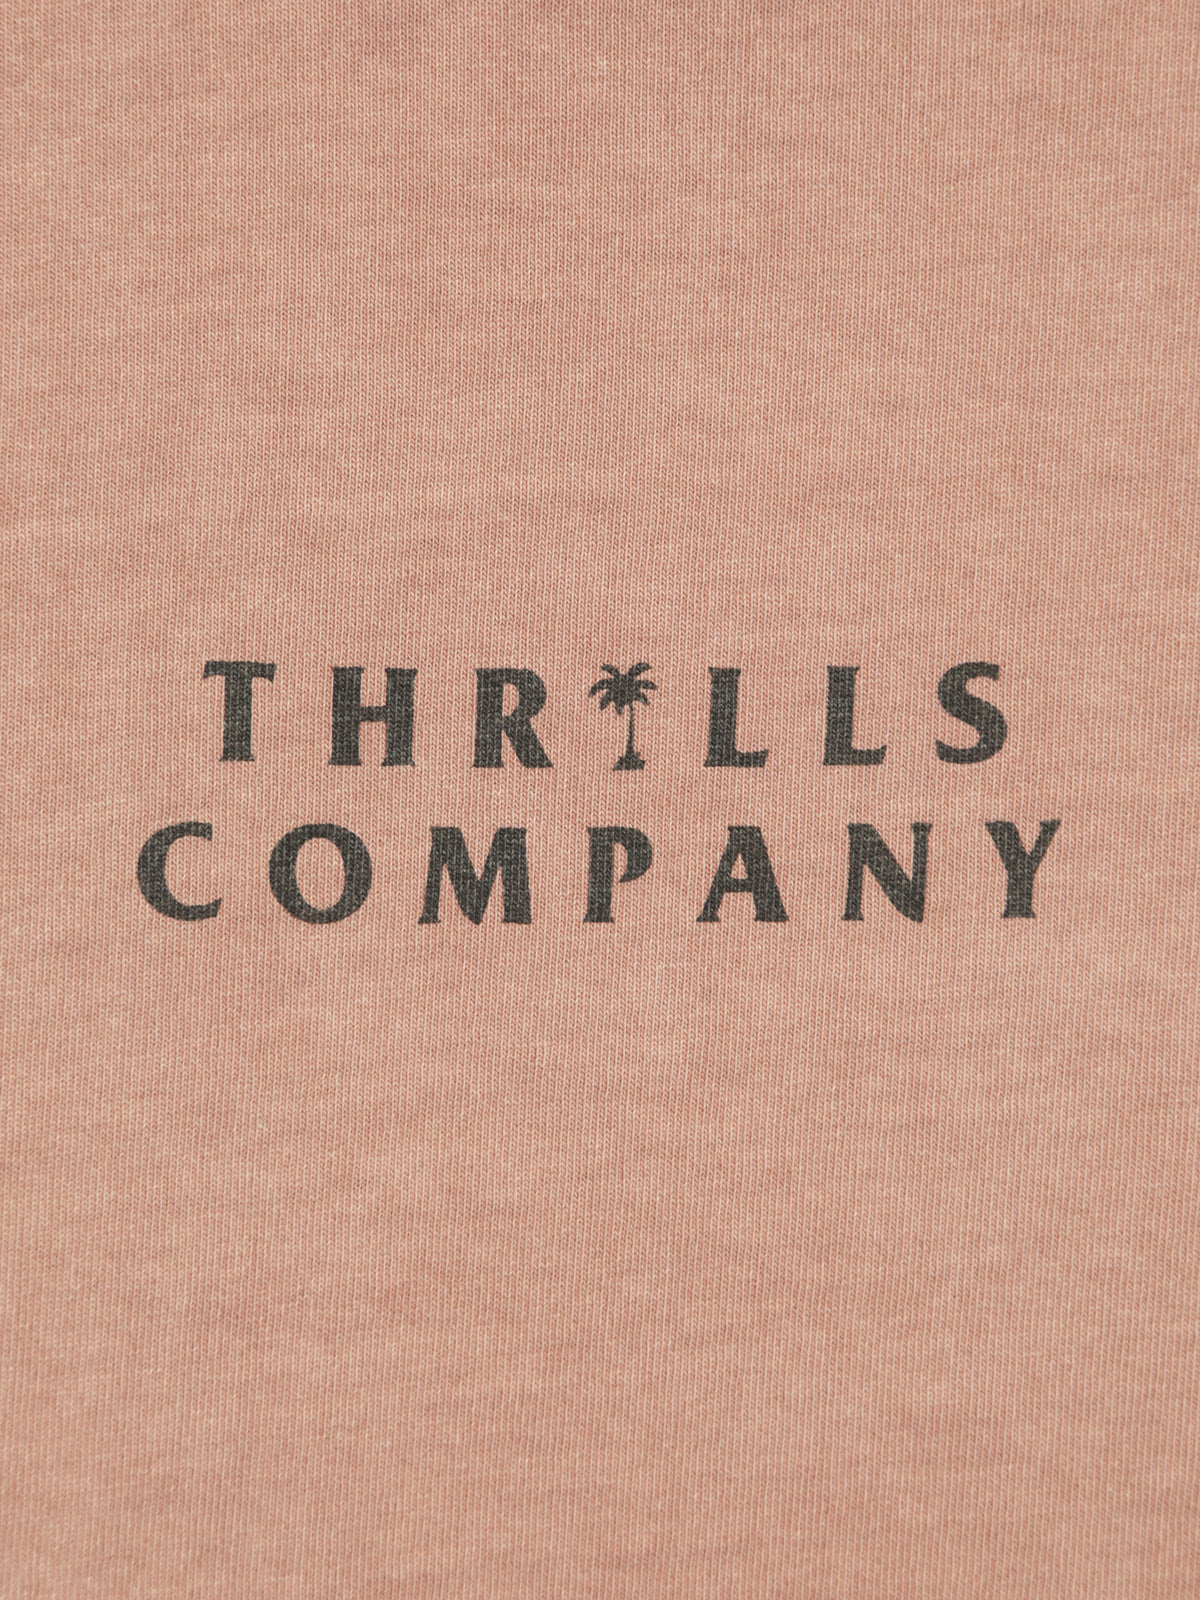 Palmed Thrills Company Band T-Shirt in Cork